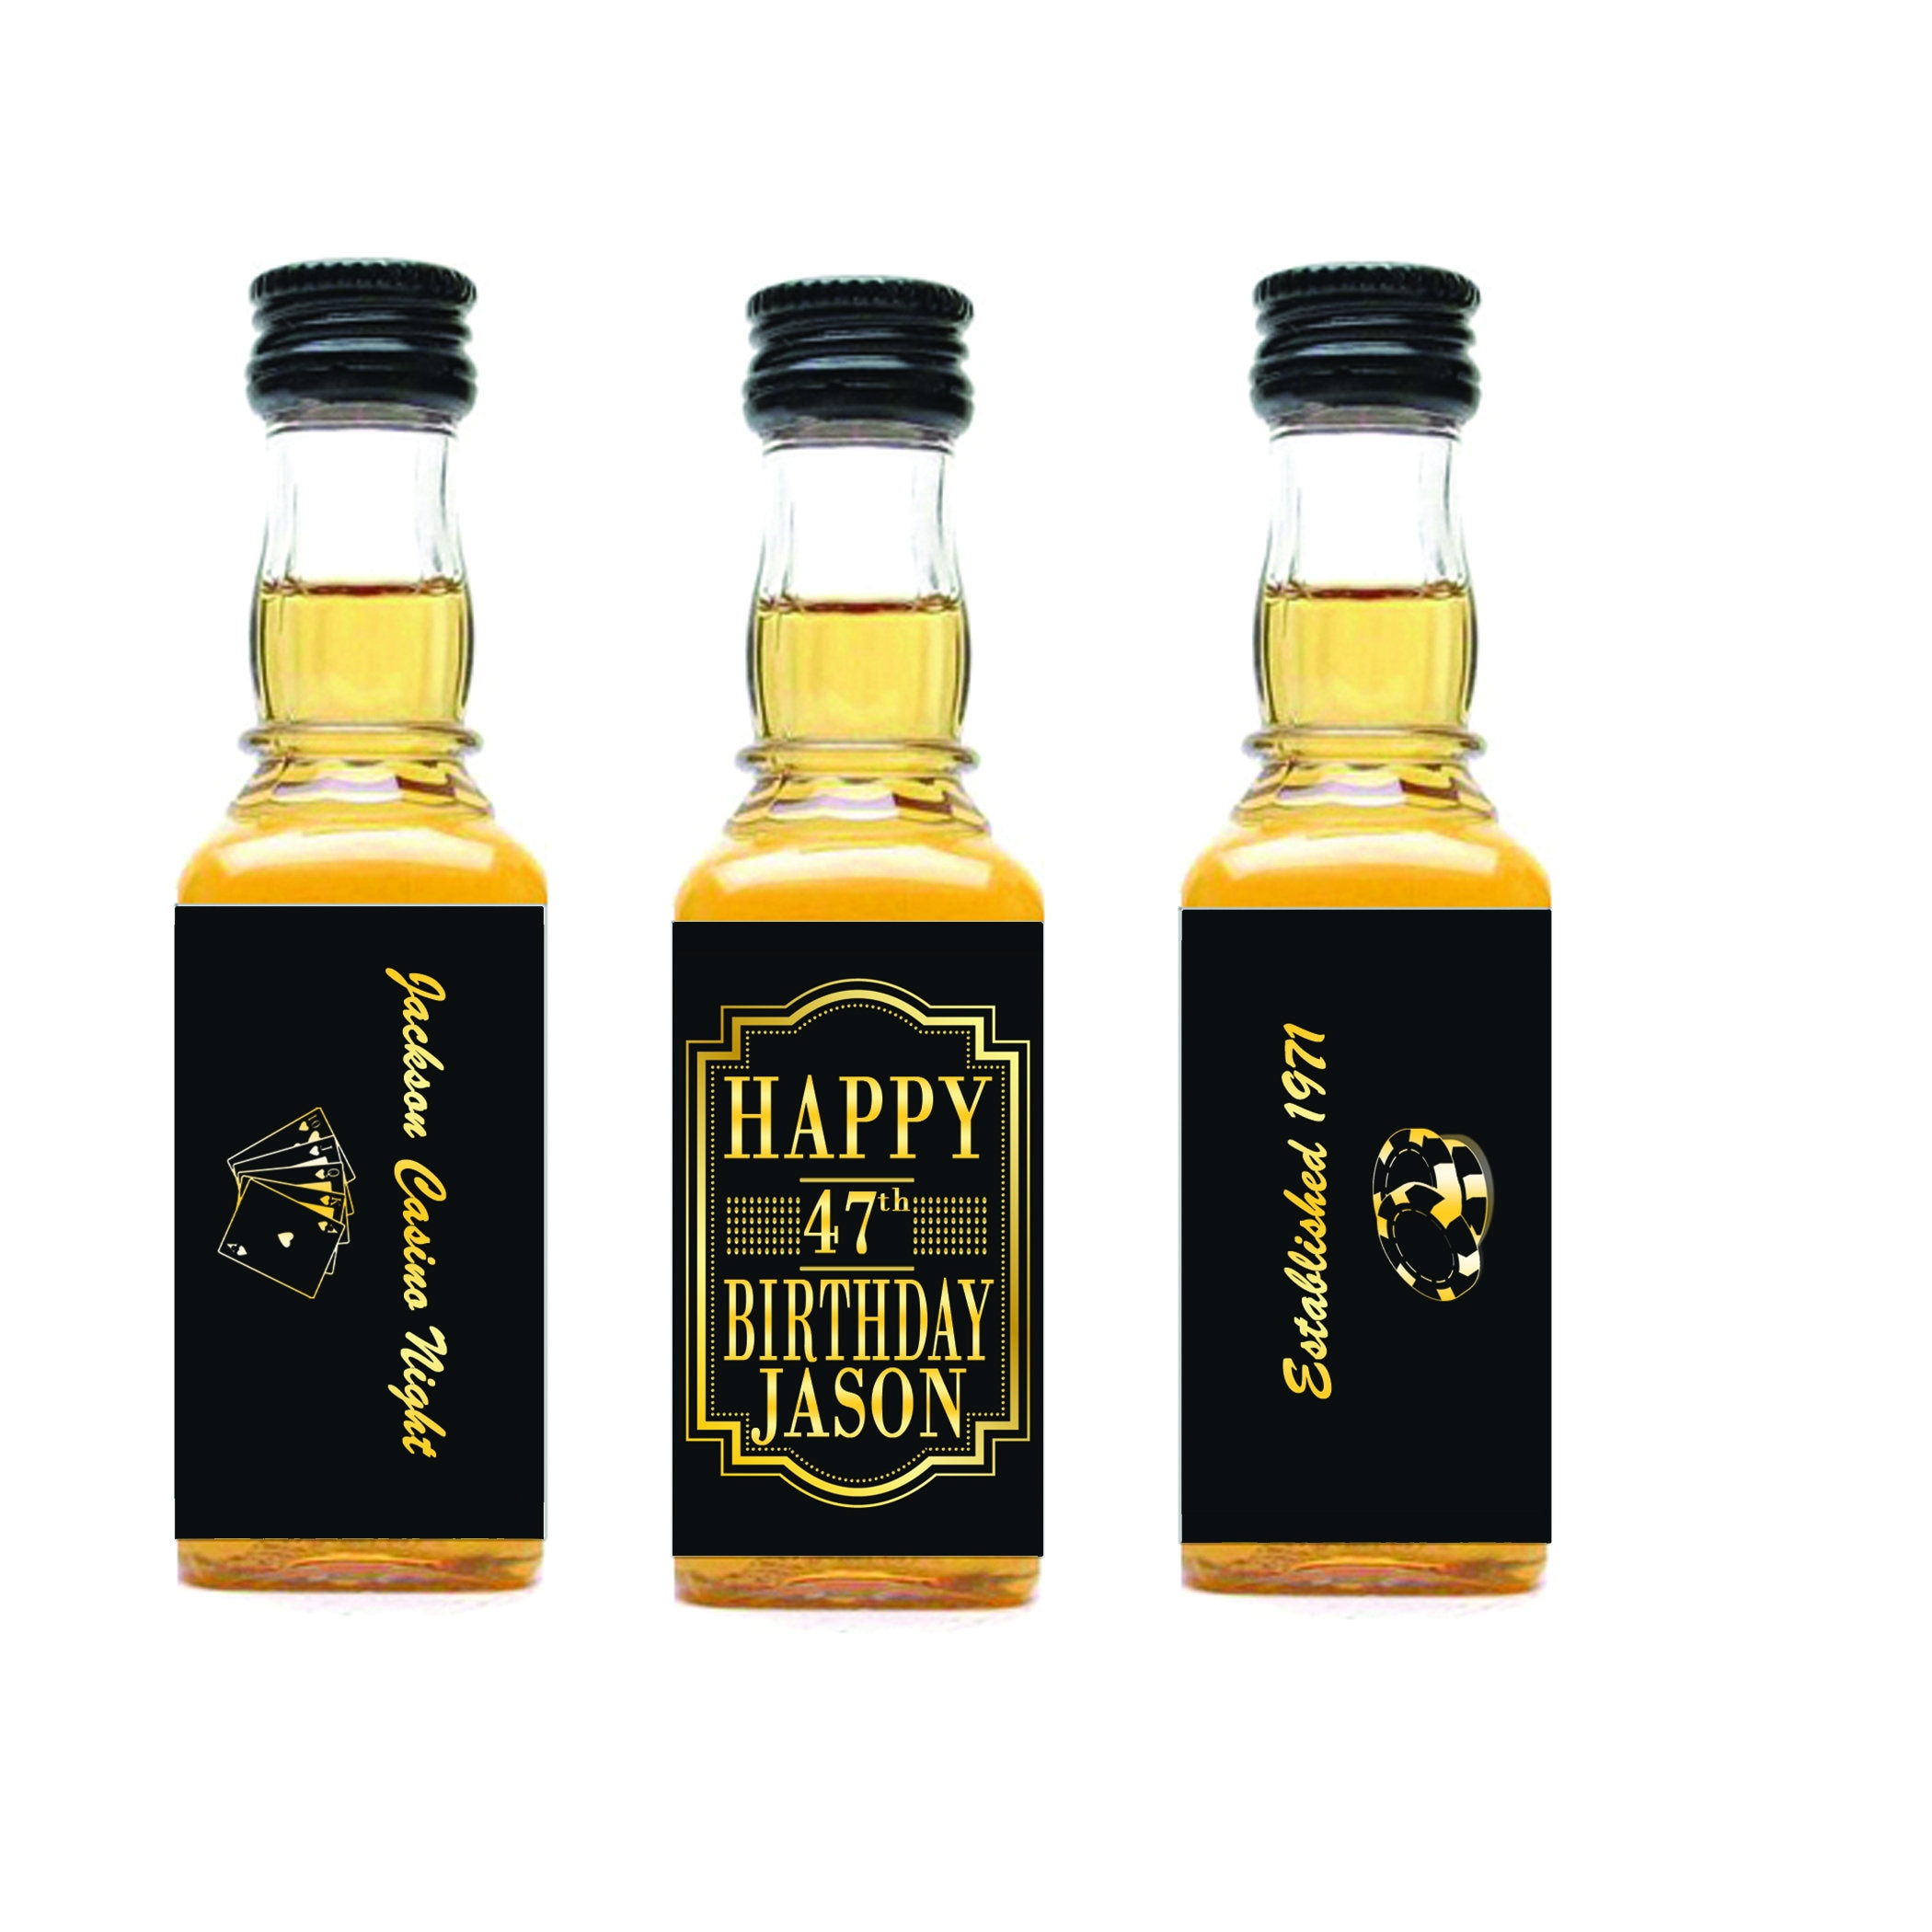 Magnificent Small Bottles Of Liquor For Wedding Favors Mold ...